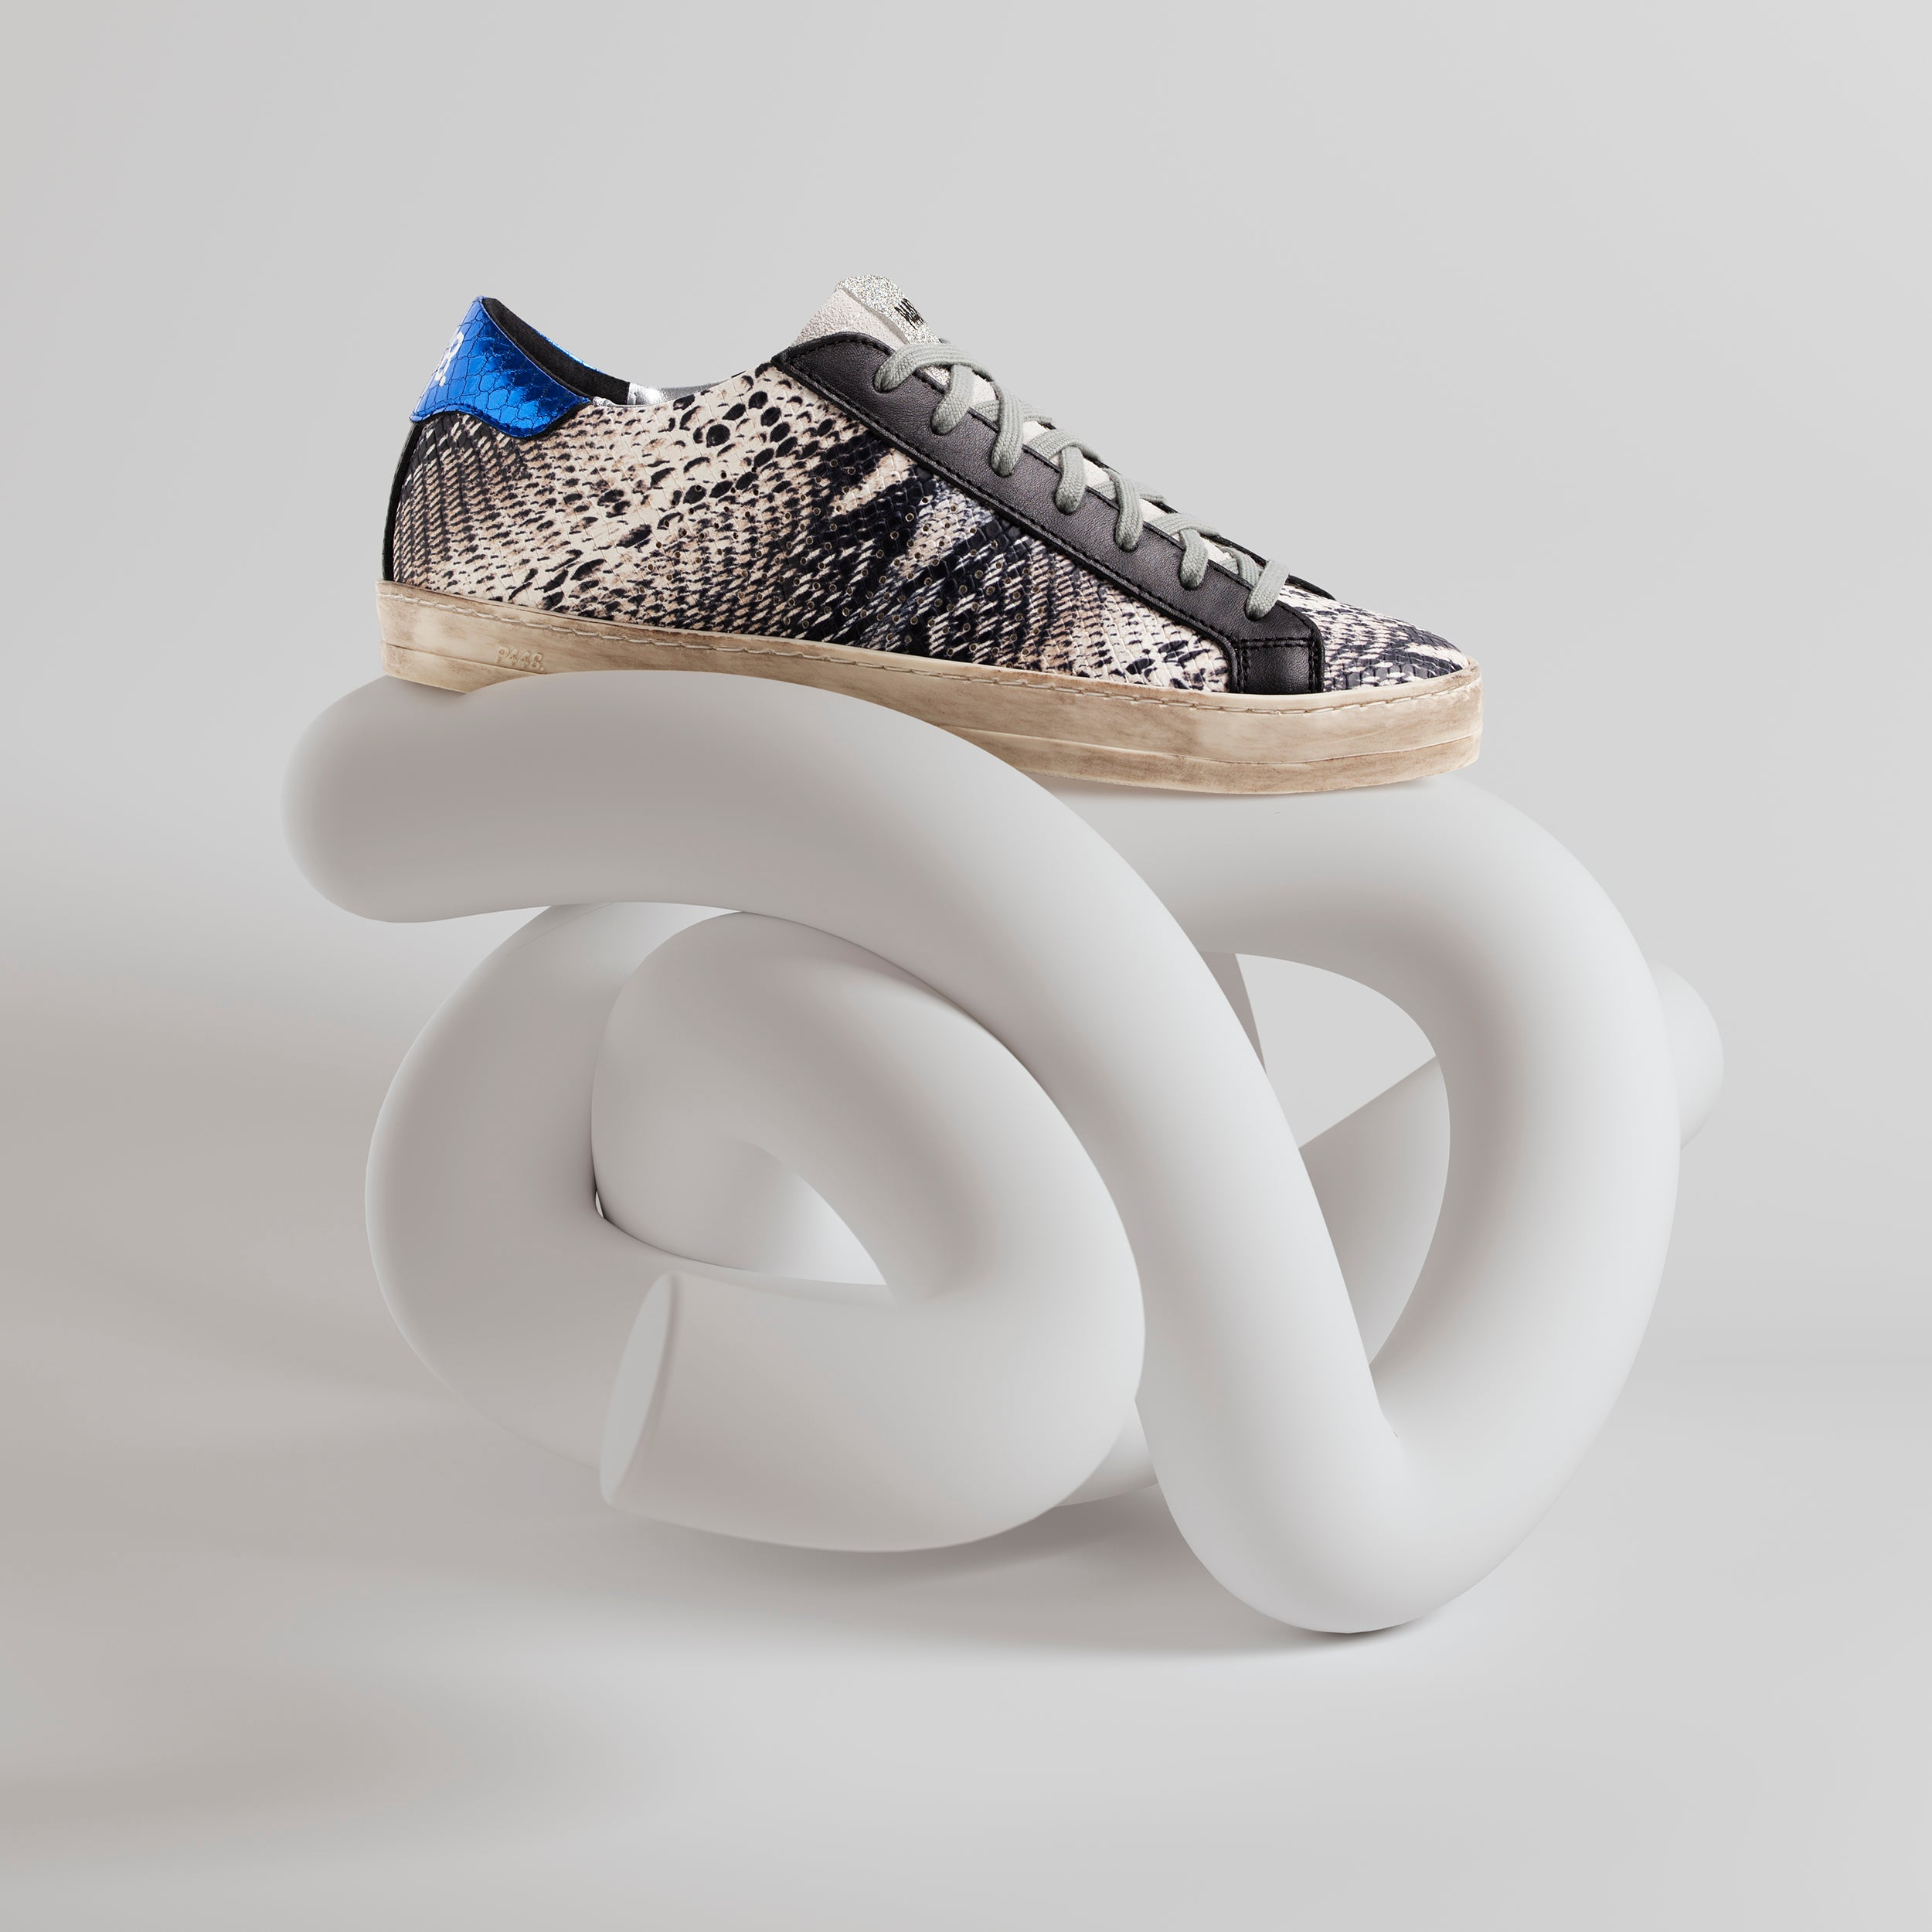 John Low-Top Sneaker in Twister Python - Side